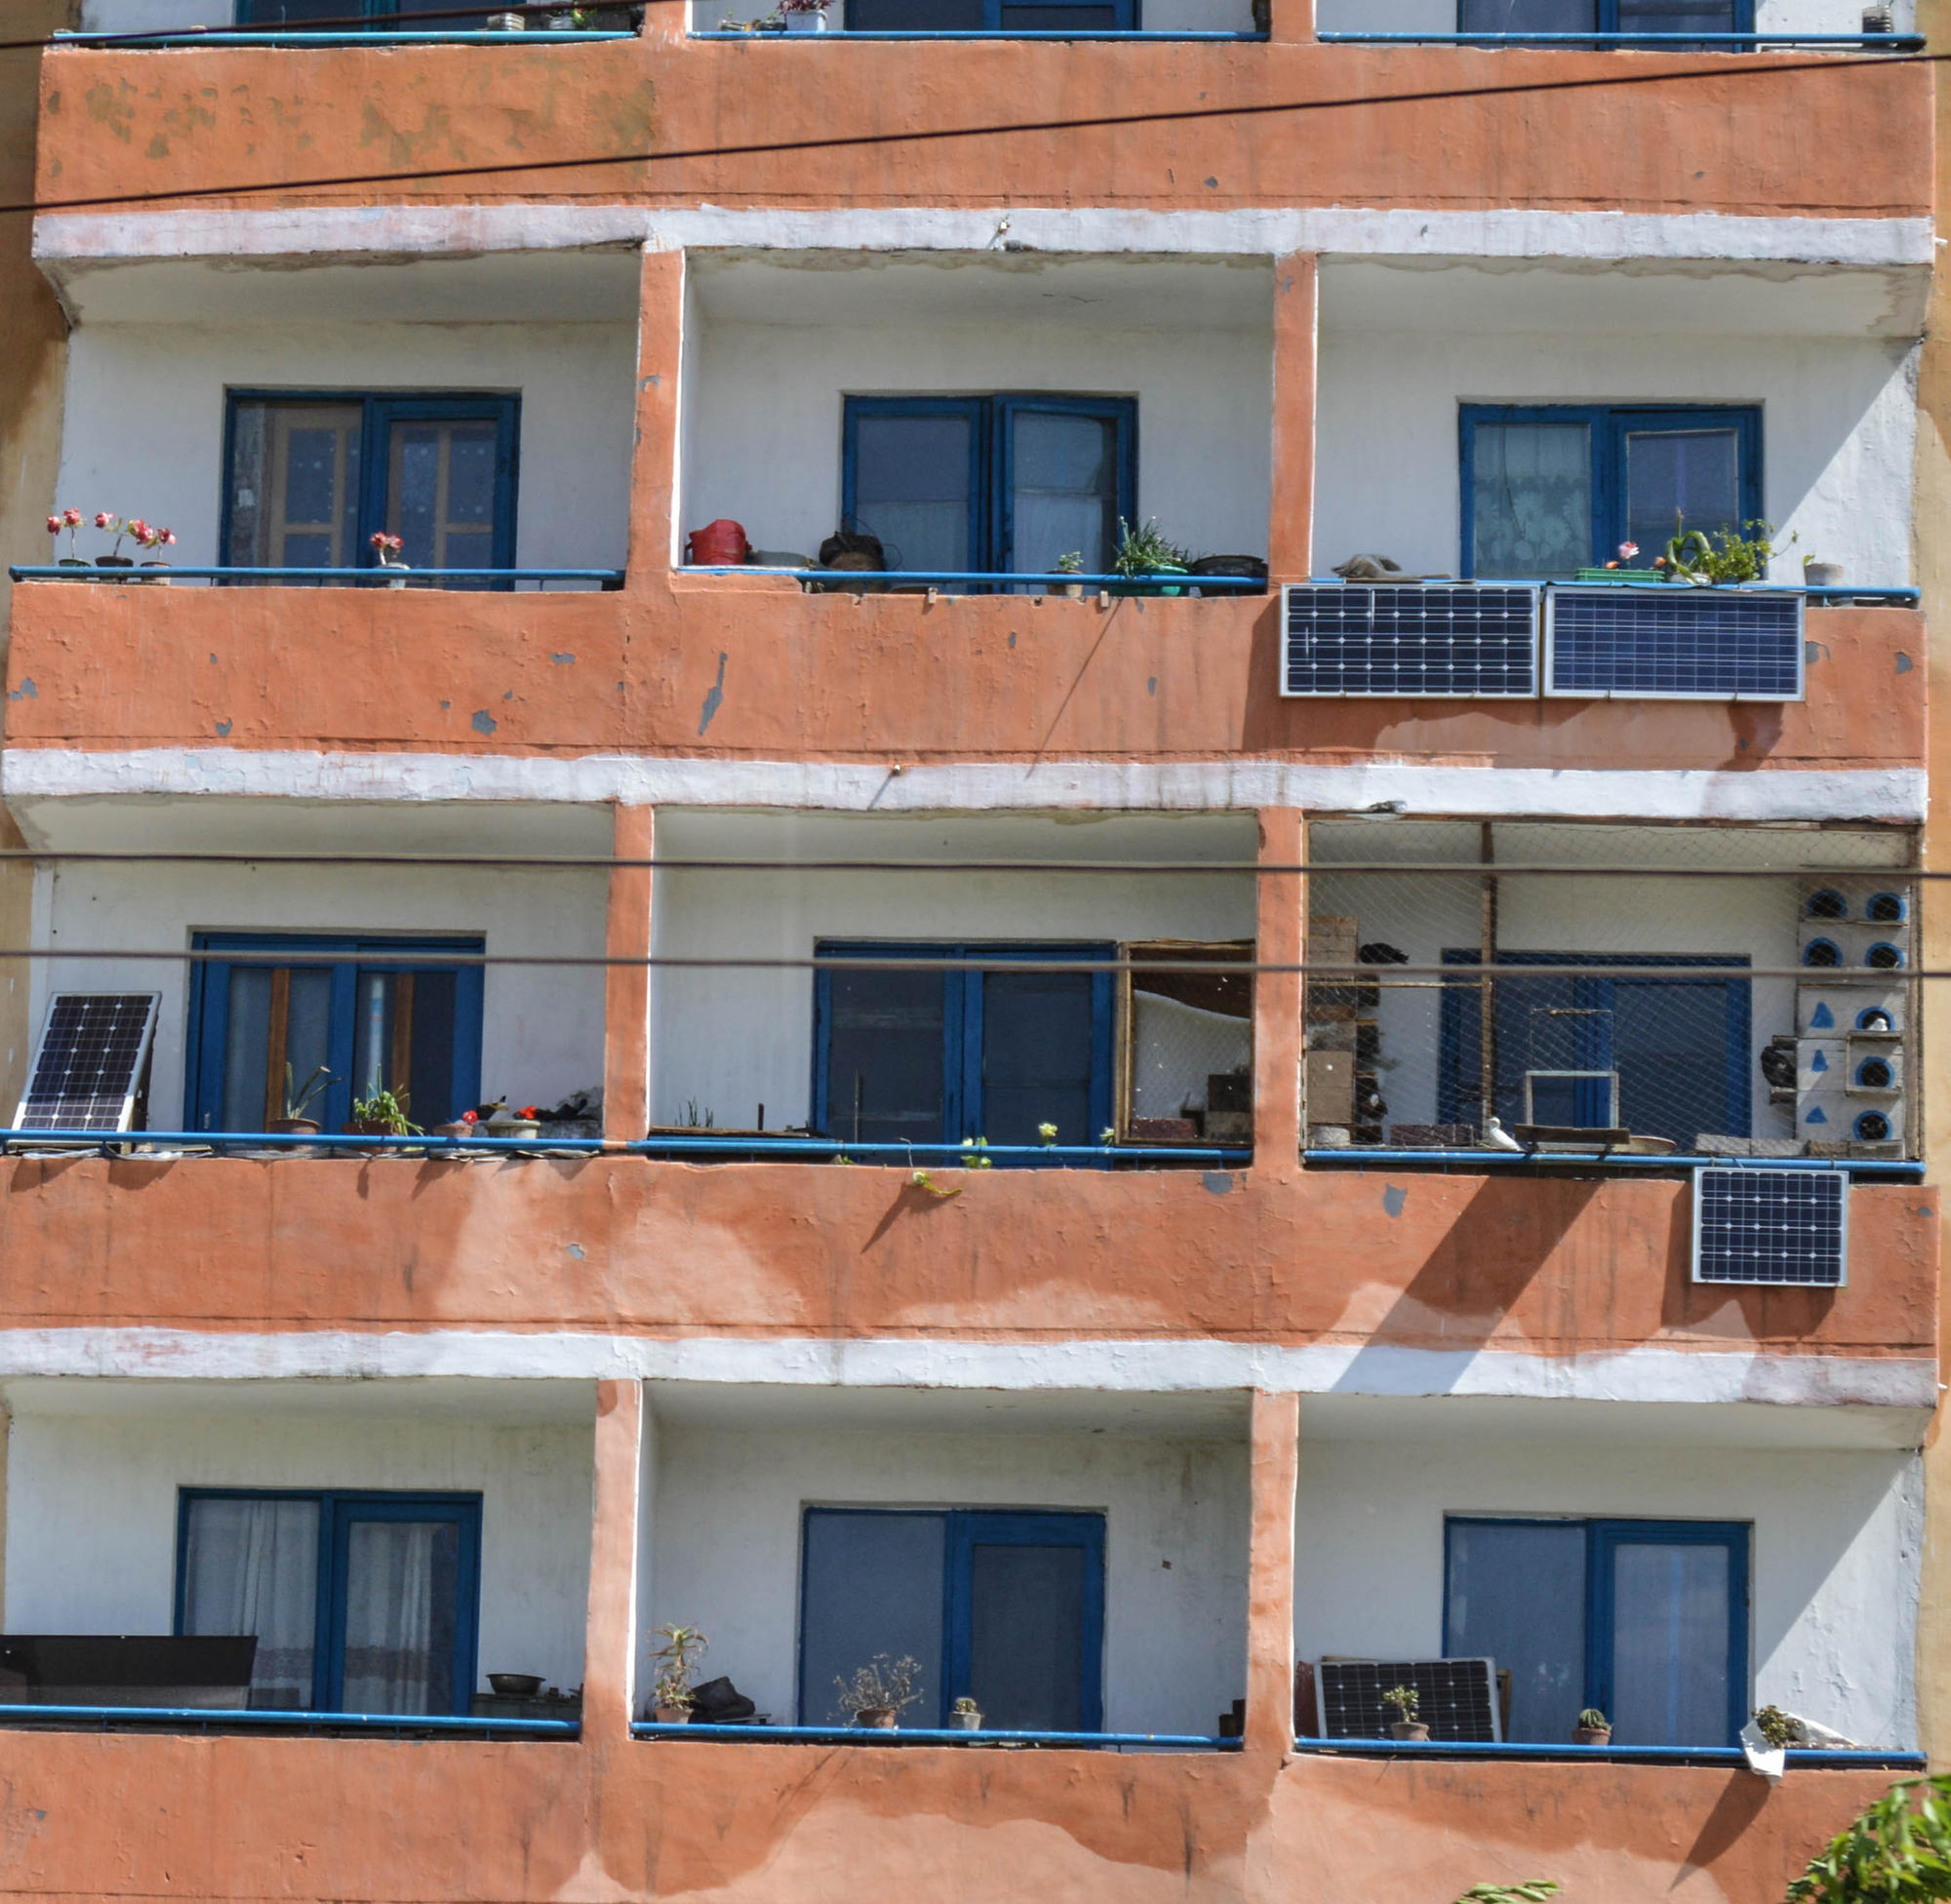 Solar panels seen on individual balconies at an apartment building in Pyongyang, North Korea.